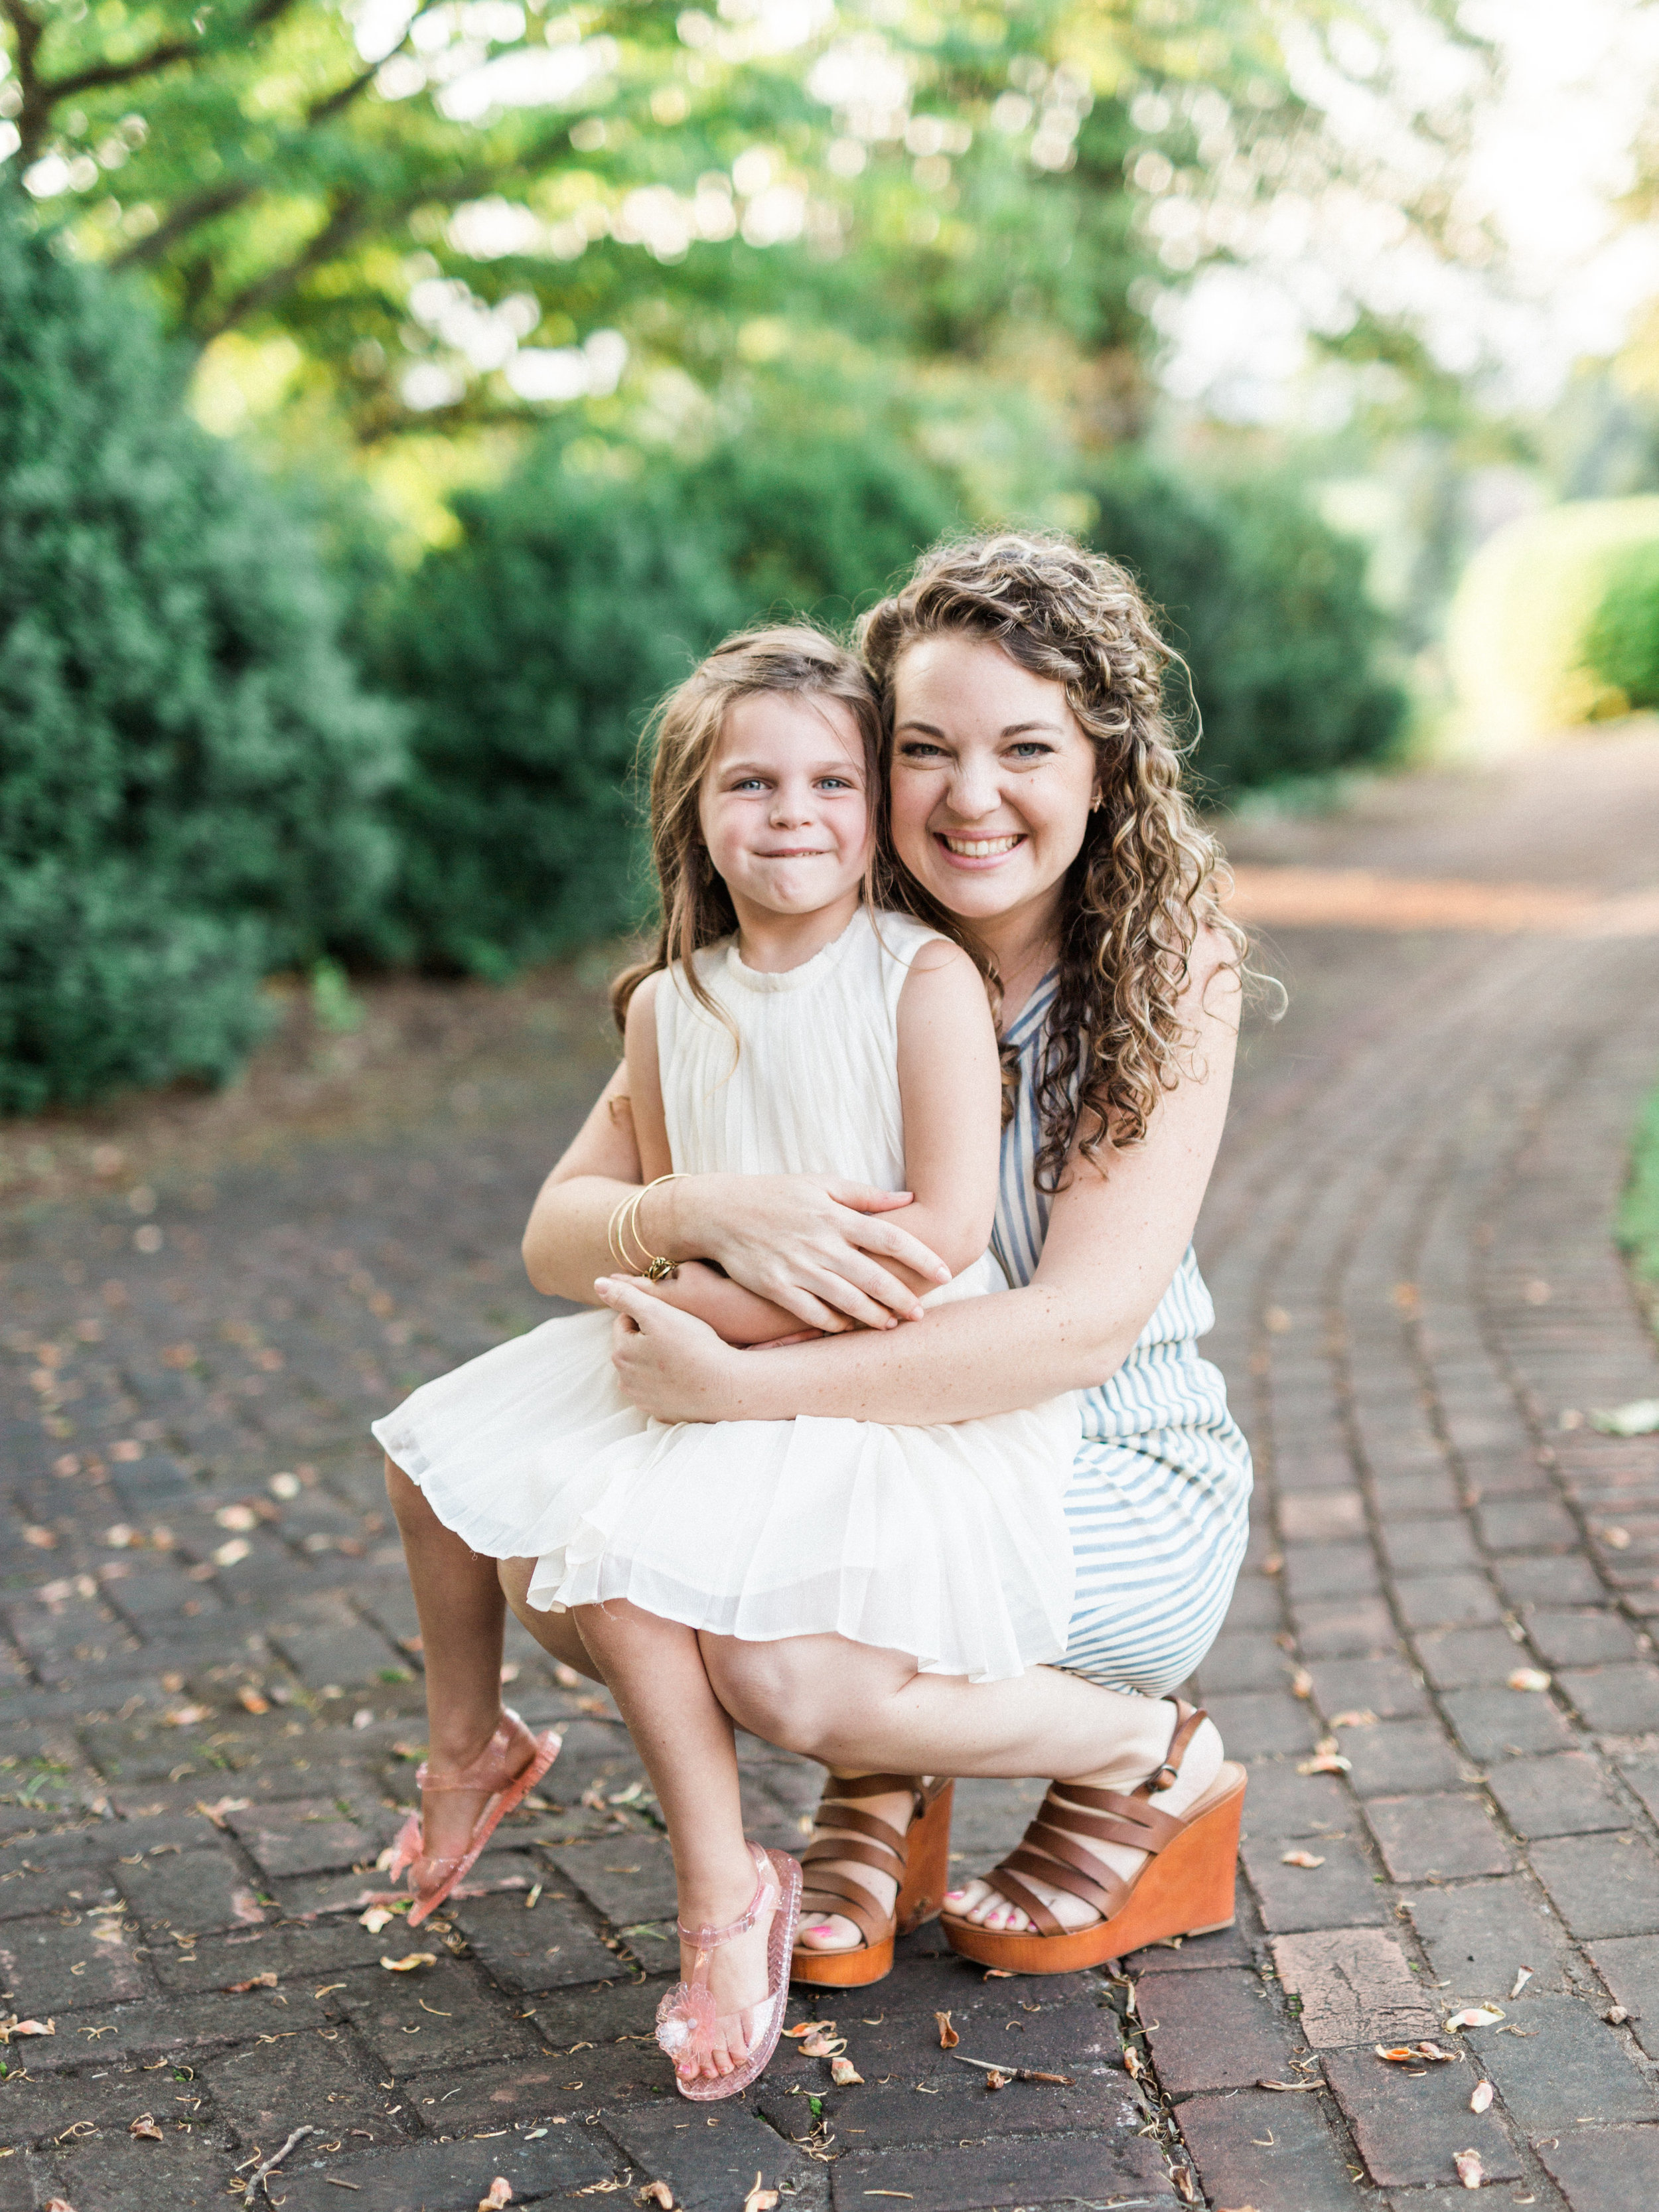 Little Moments matter in motherhood || Mom Boss || Ashley Eiban Photography || www.ashleyeiban.com